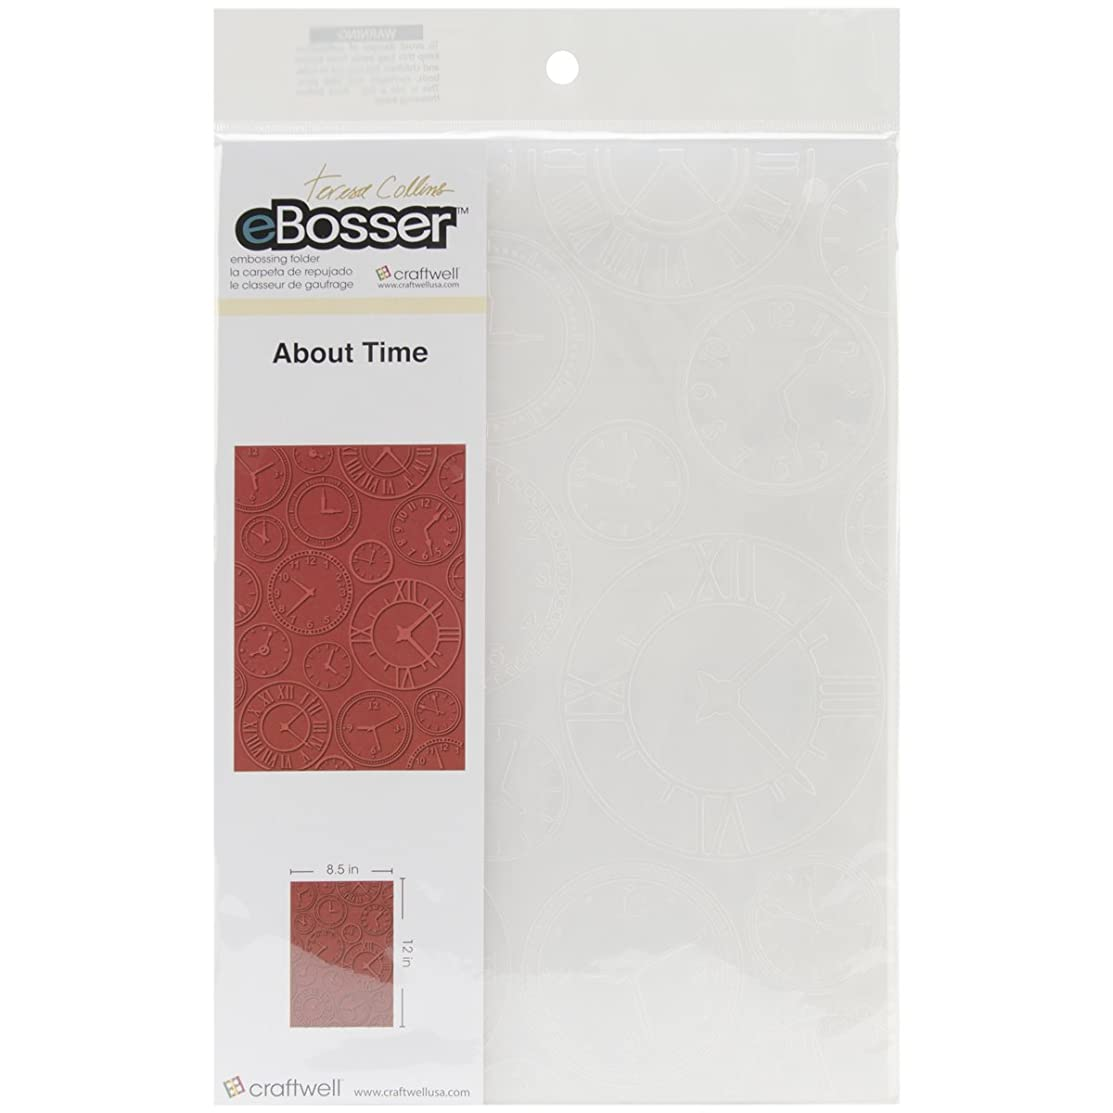 Craftwell USA About Time Teresa Collins Embossing Folder, 8.5 by 12-Inch